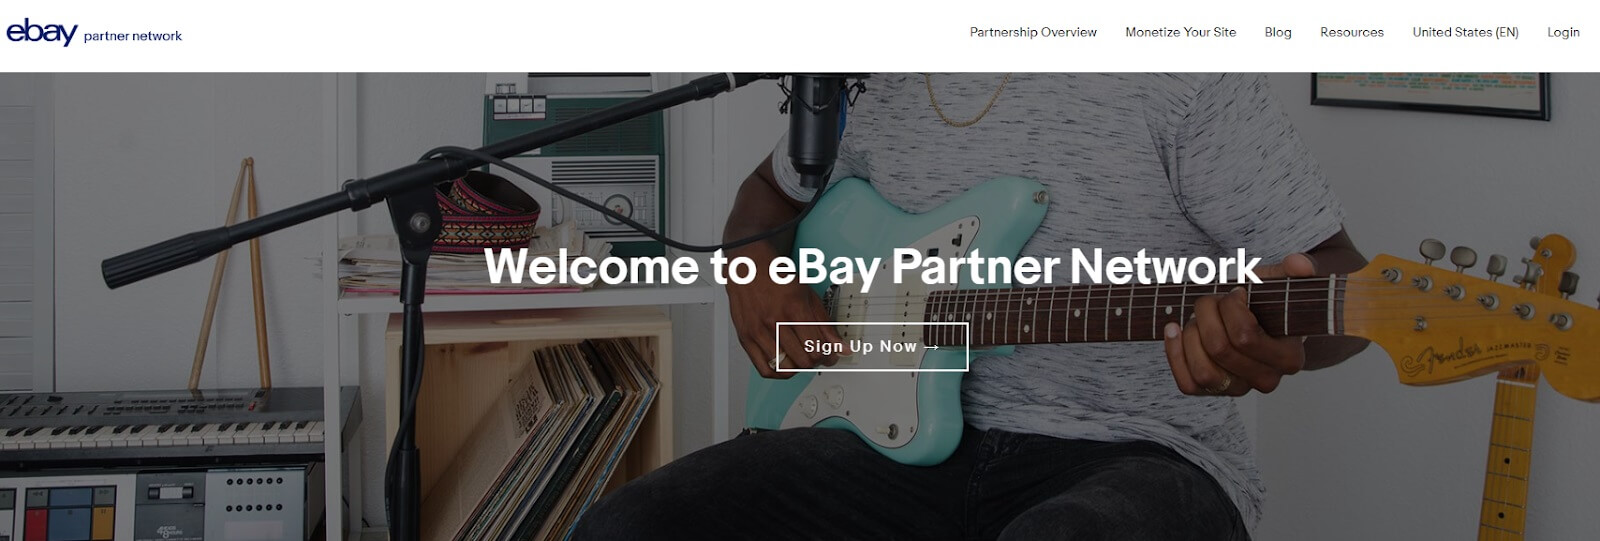 ebay affiliates program - Outbrain